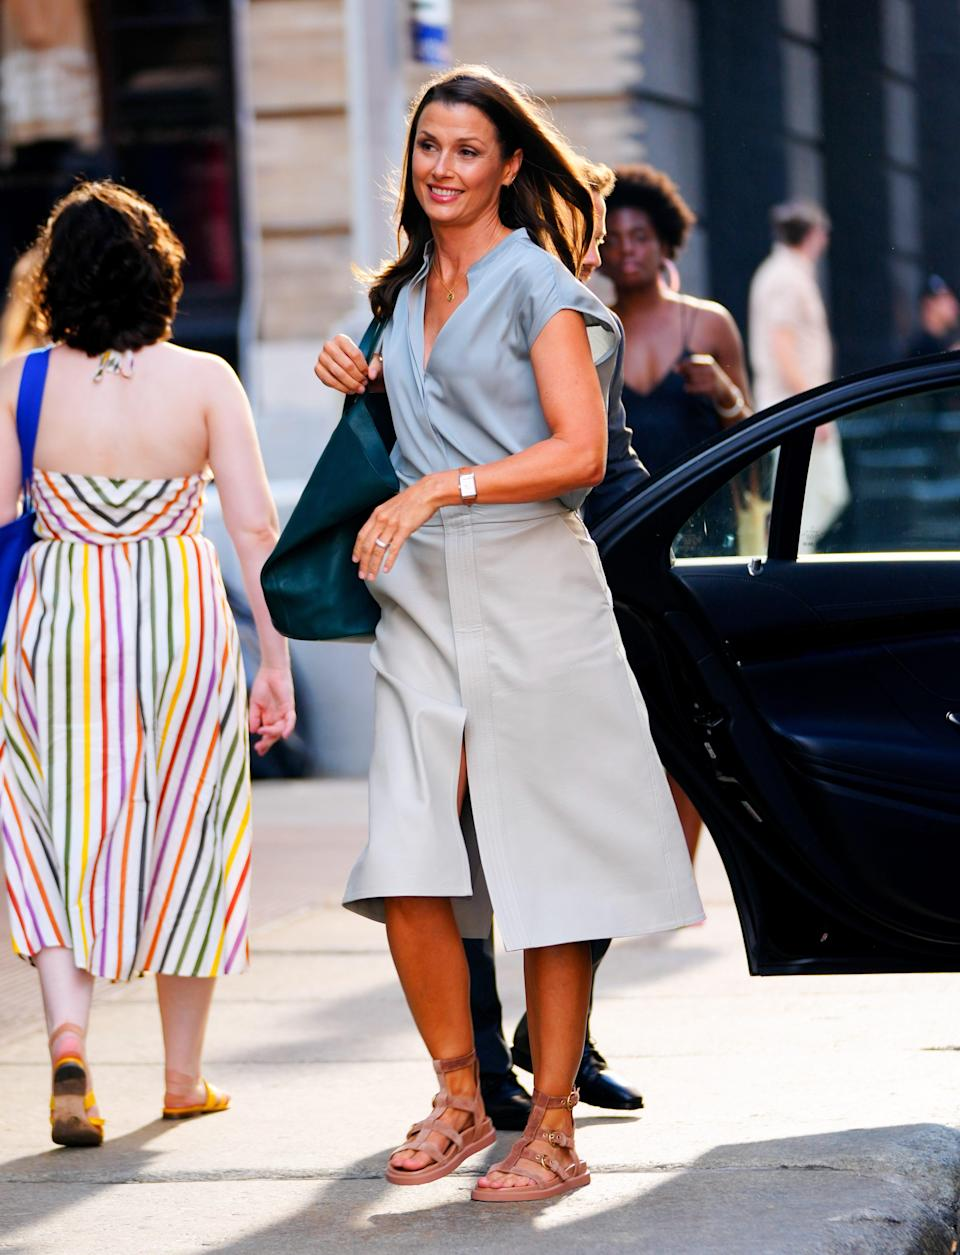 Bridget Moynahan on location for 'And Just Like That...' the reboot to 'Sex and the City'